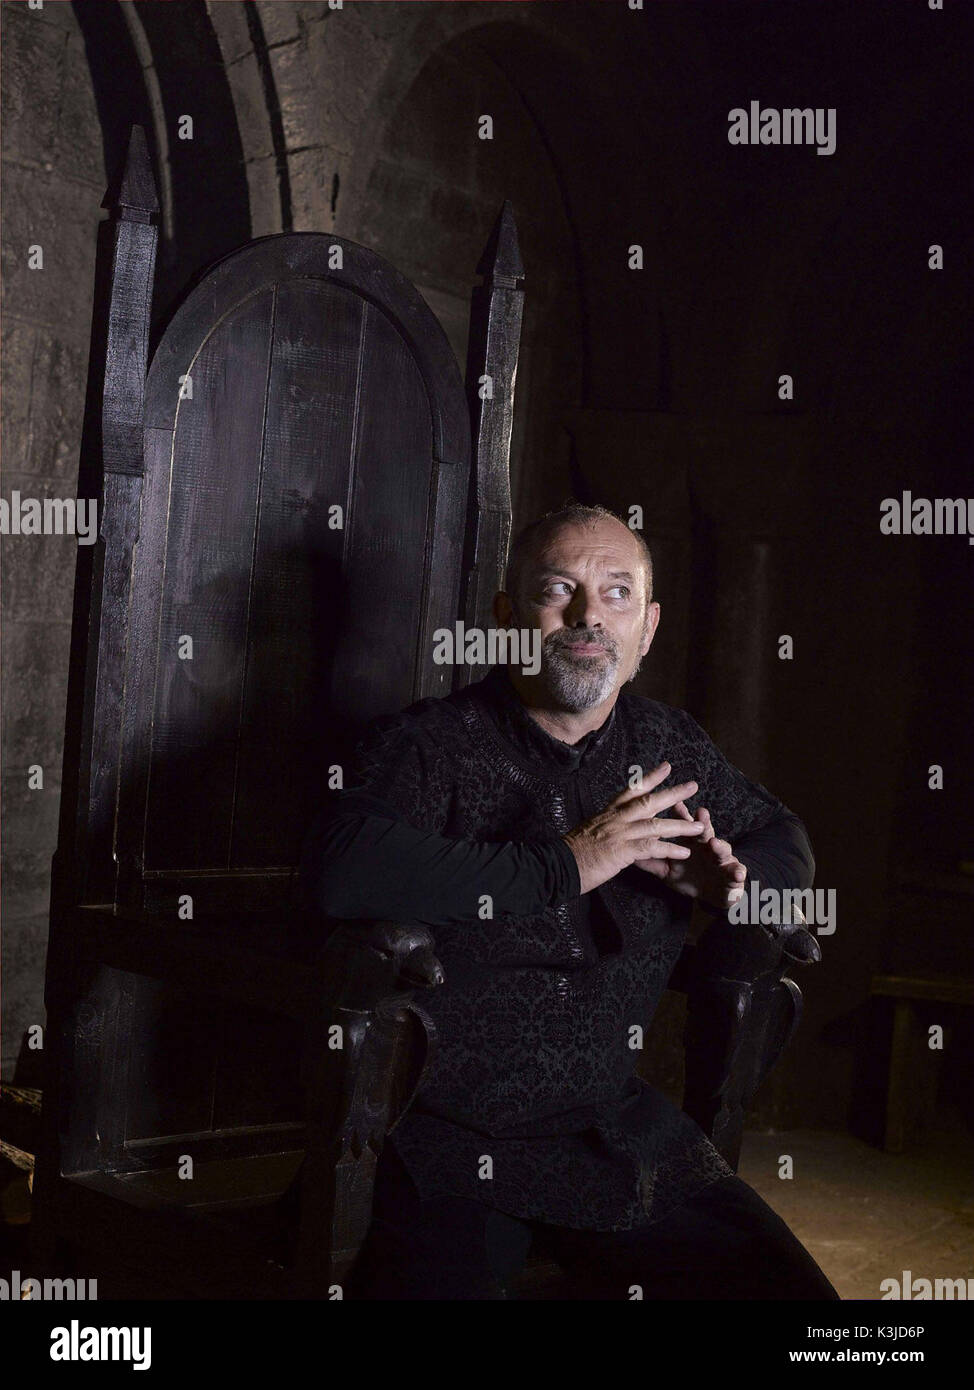 ROBIN HOOD KEITH ALLEN as the sheriff of Nottingham ROBIN HOOD     Date: 2006 - Stock Image